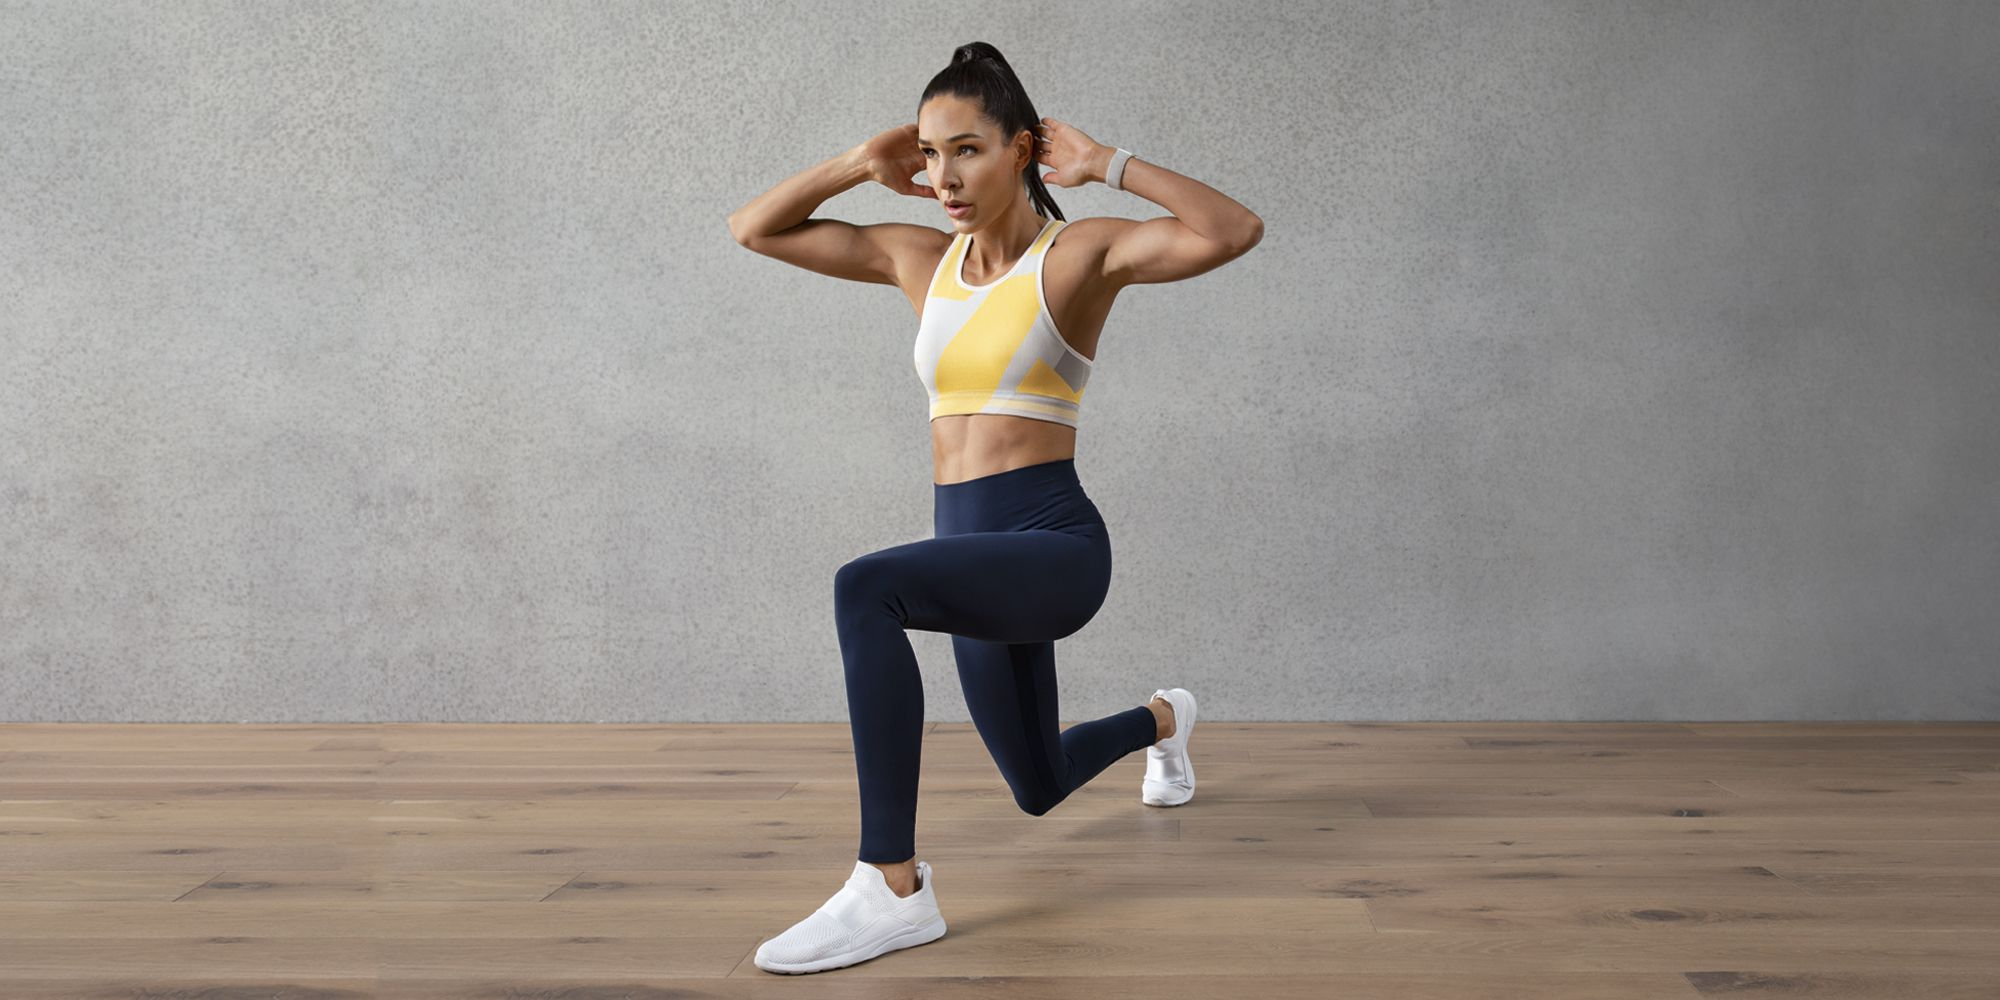 Kayla Itsines Just Launched BBG Zero Equipment - Here's Everything You Need to Know